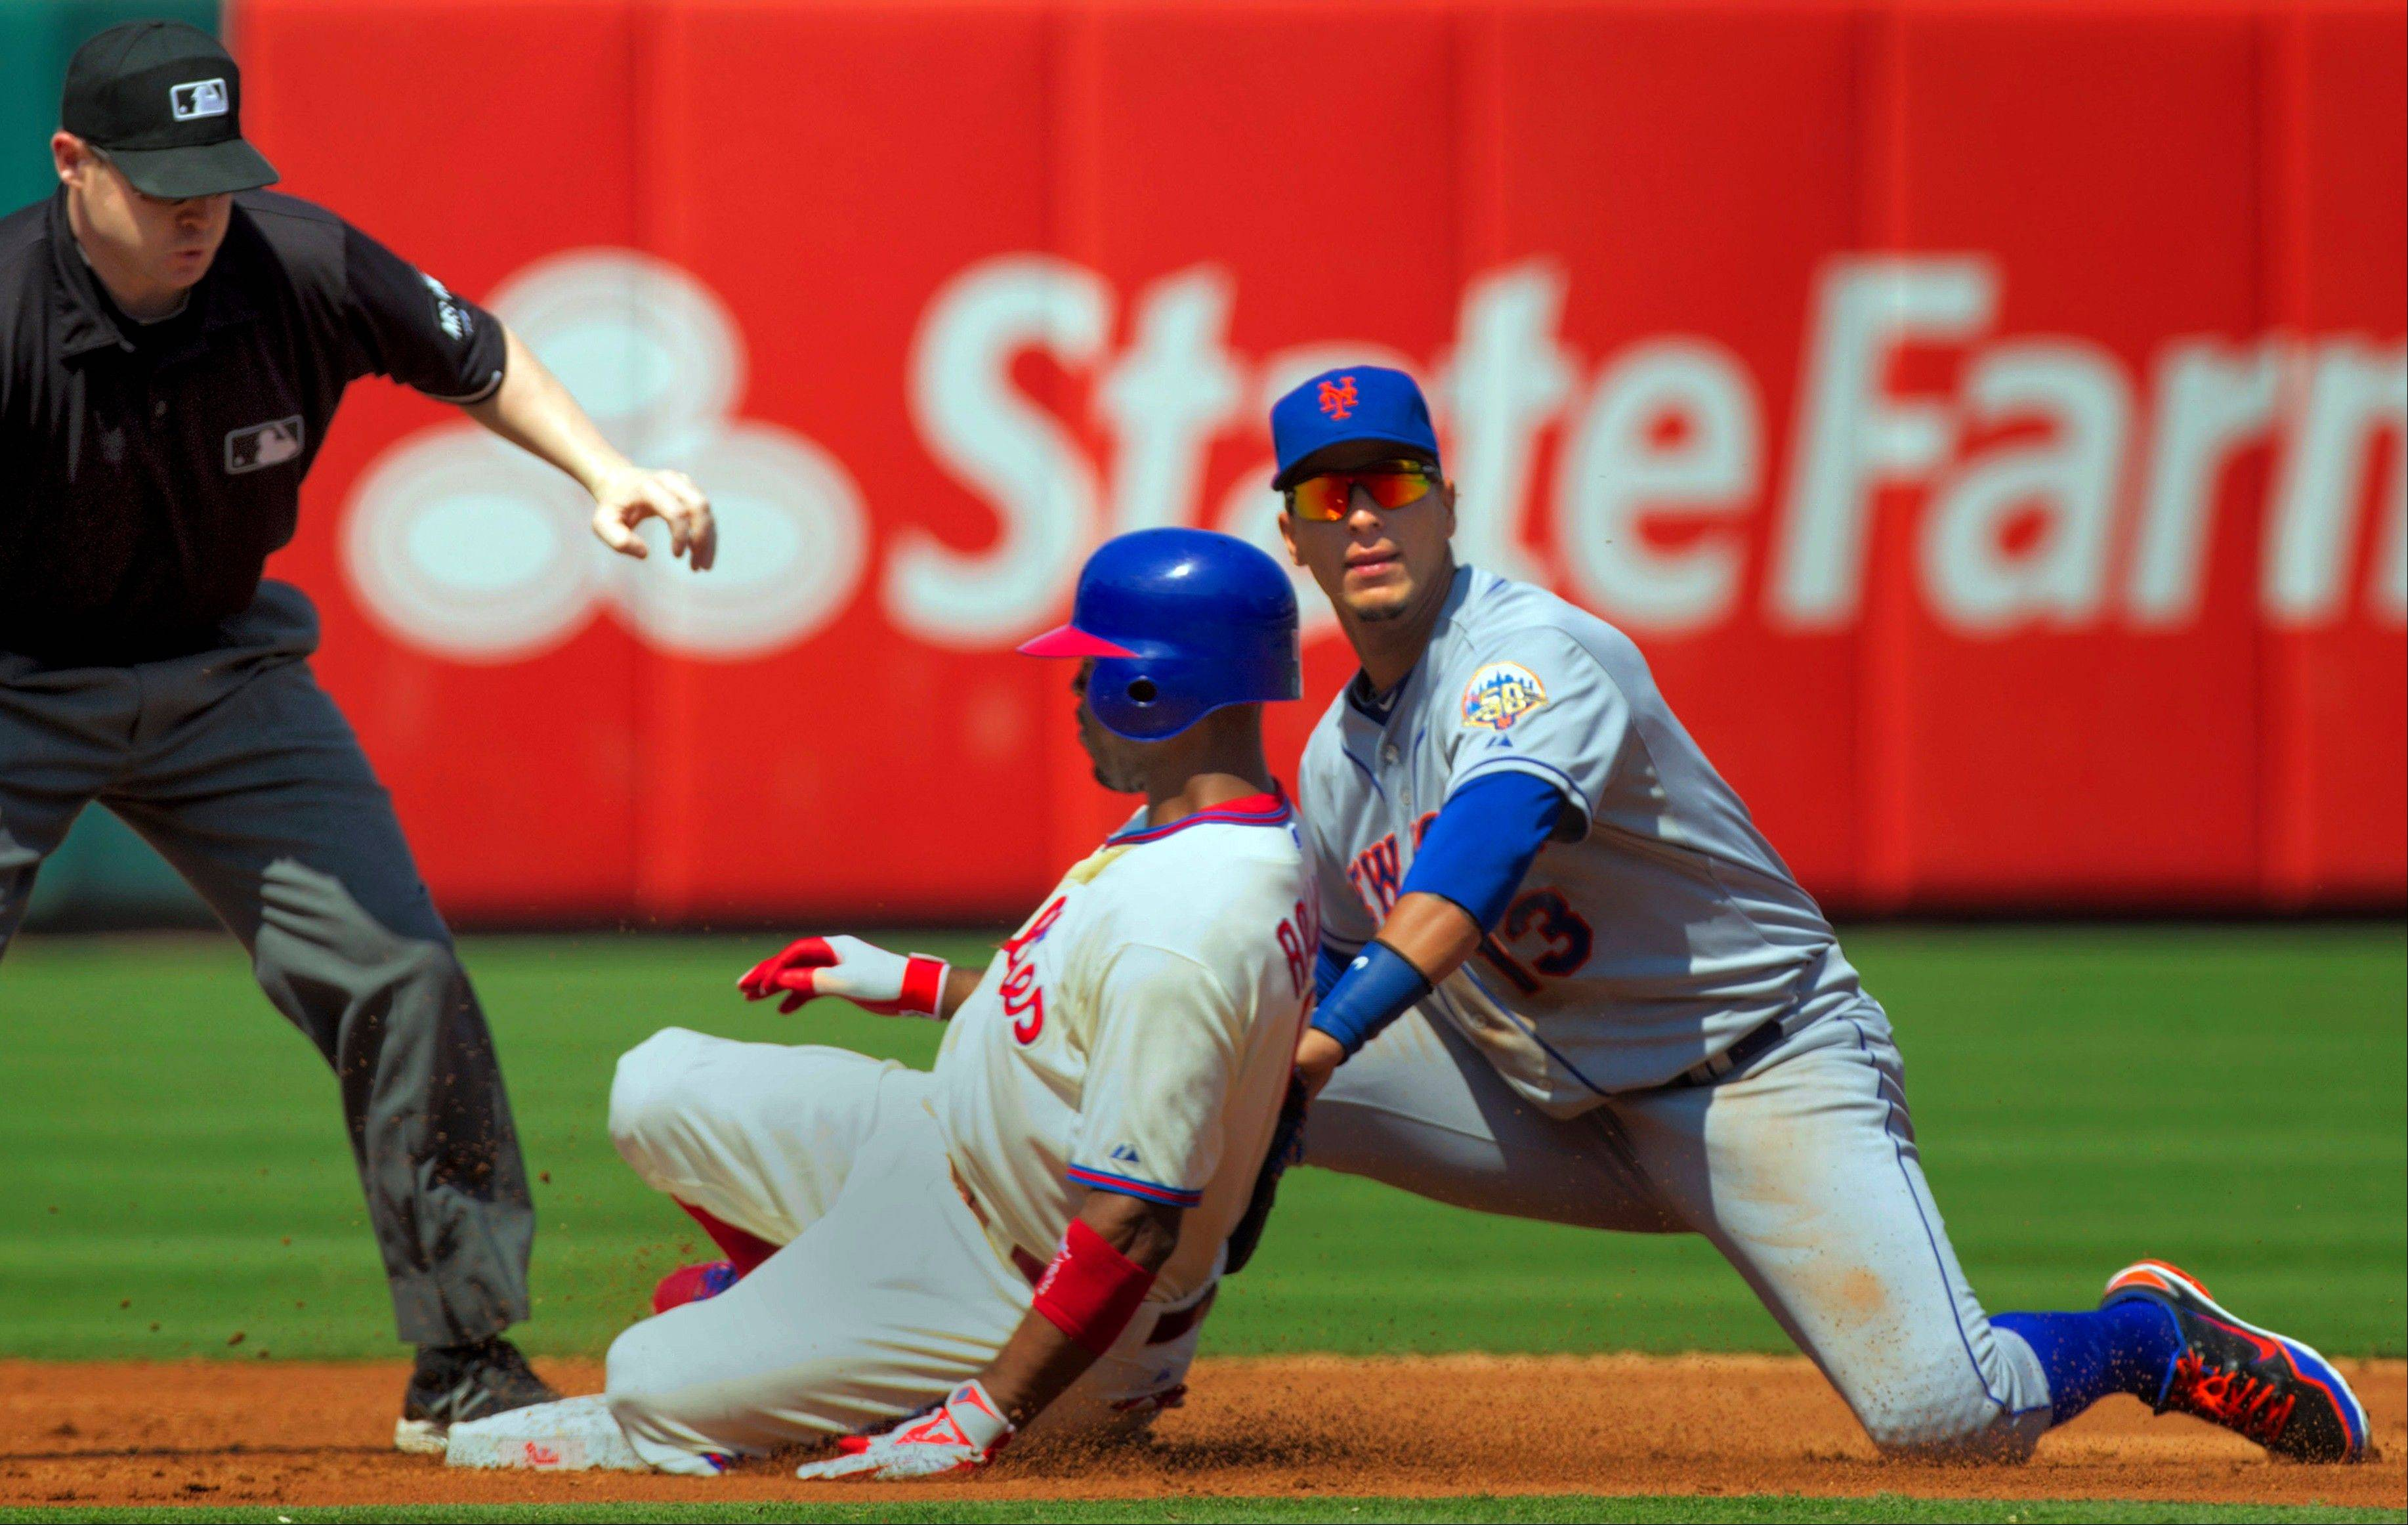 The Phillies� Jimmy Rollins safely slides into second for a double past New York Mets shortstop Ronny Cedeno during the third inning Thursday in Philadelphia. Rollins was benched later in the game.